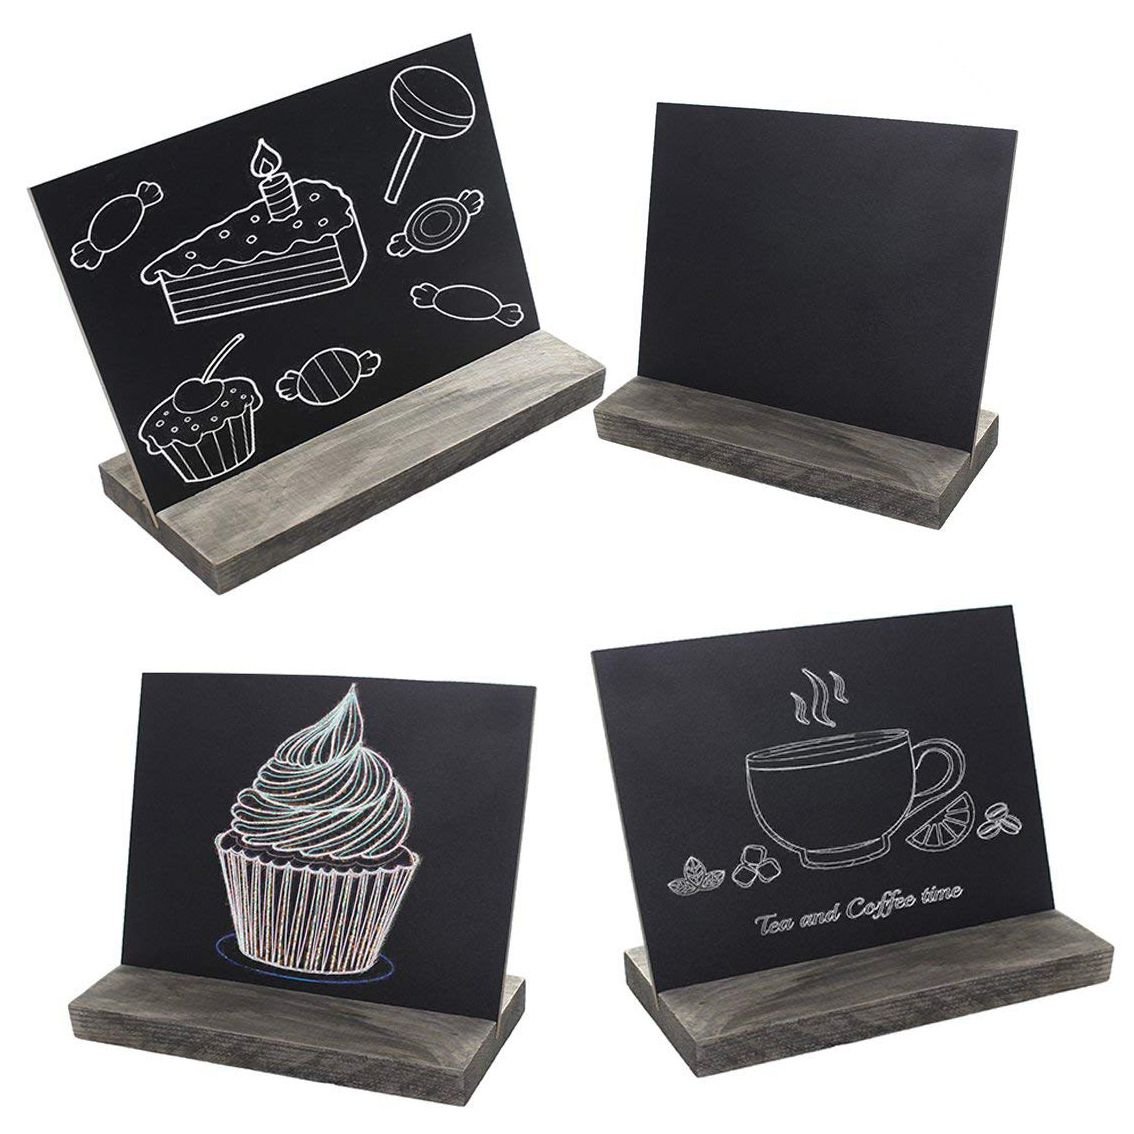 Wooden Mini Blackbord 4pcs Set With 3 Chalks Wood Base Stand Rustic Style Tabletop Chalkboard Small Sign Name Card 15.3x12.7x4.6Wooden Mini Blackbord 4pcs Set With 3 Chalks Wood Base Stand Rustic Style Tabletop Chalkboard Small Sign Name Card 15.3x12.7x4.6